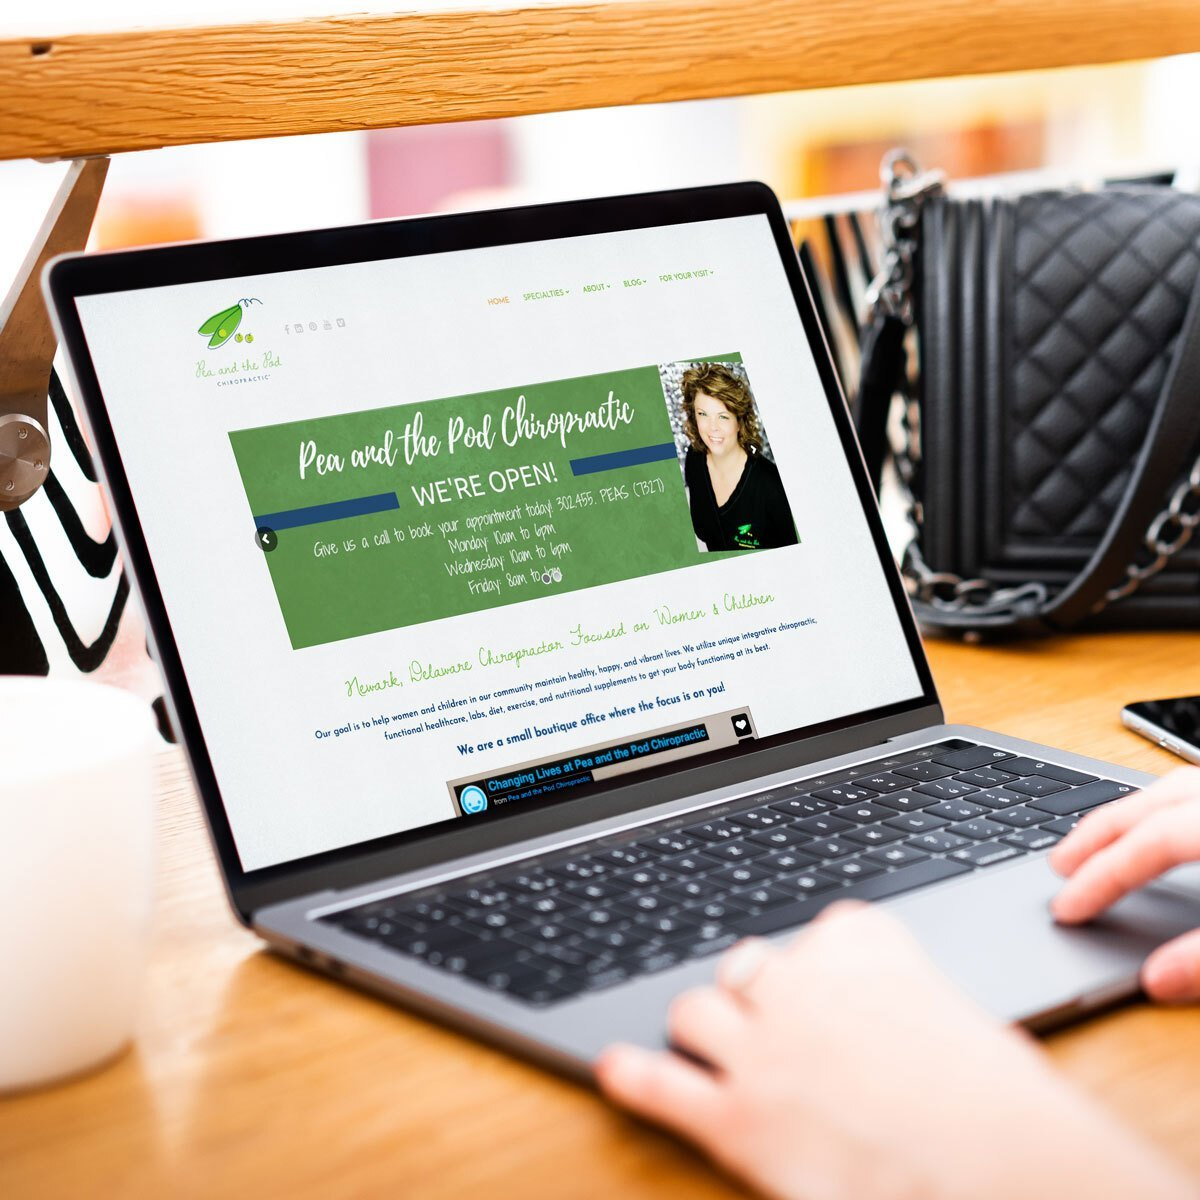 Pea and the Pod Chiropractic Web Design by BrandSwan, a web design company